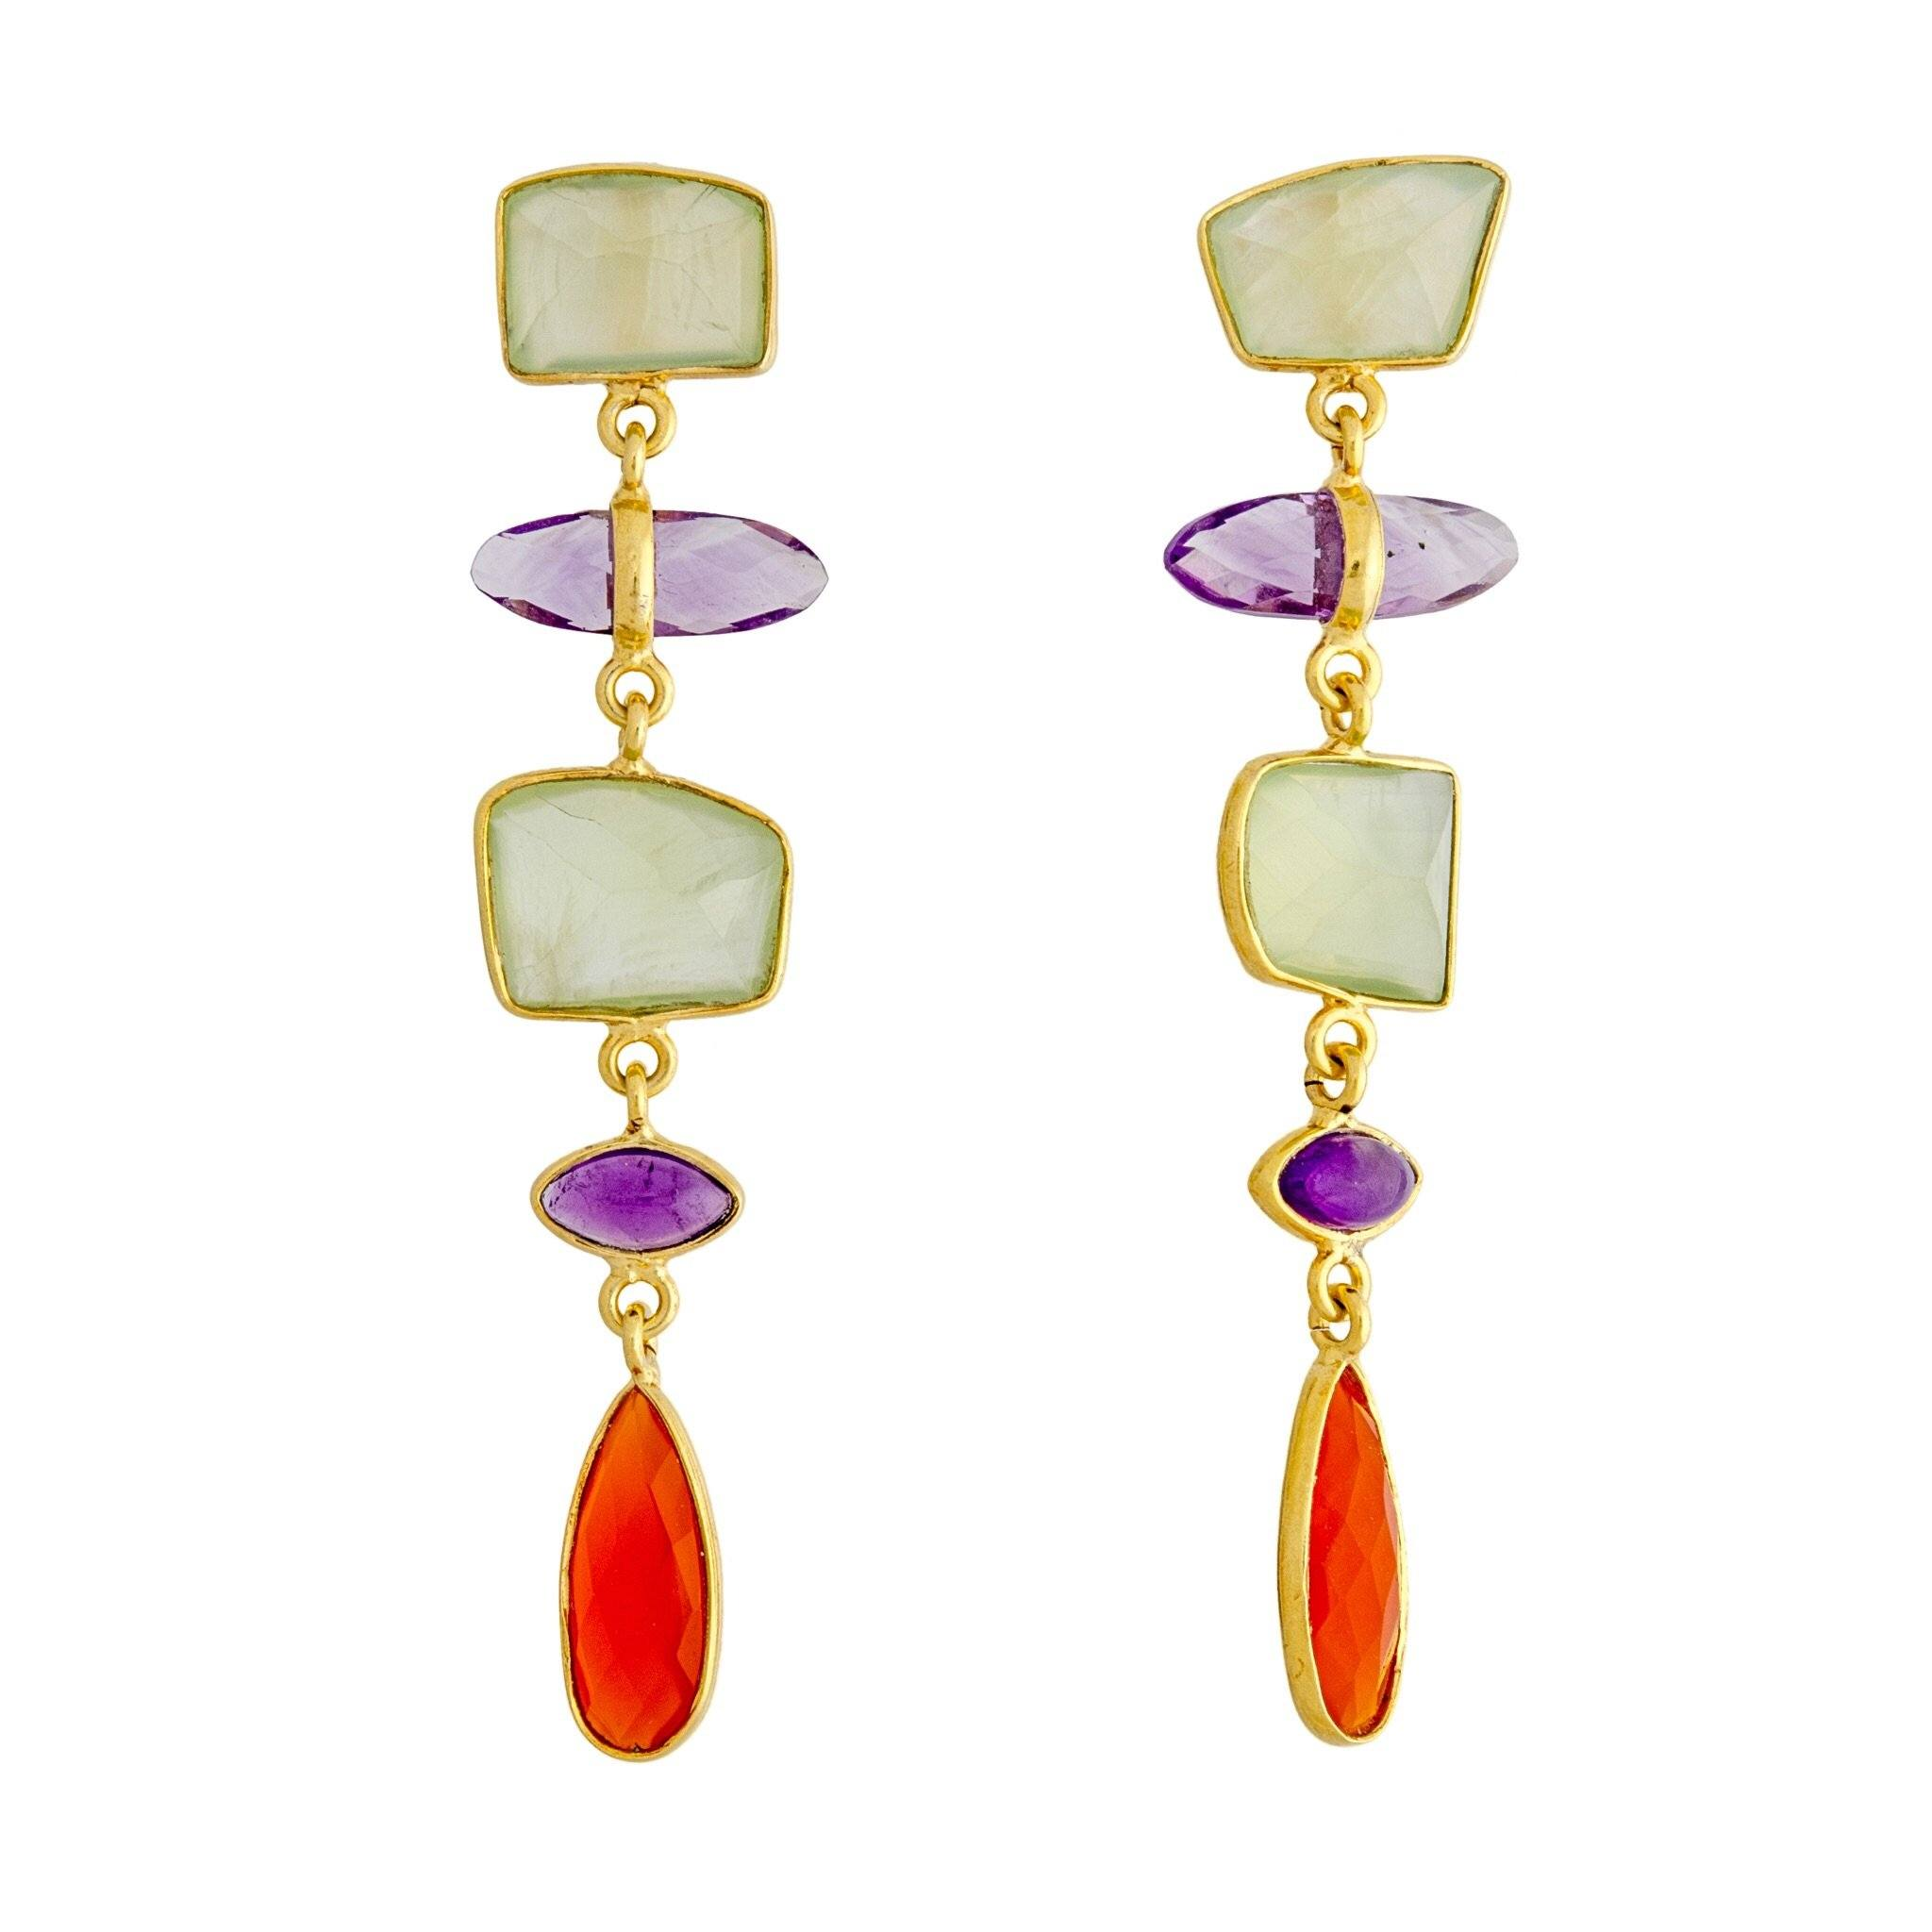 UDAIPUR peridot earrings - MadamSiam